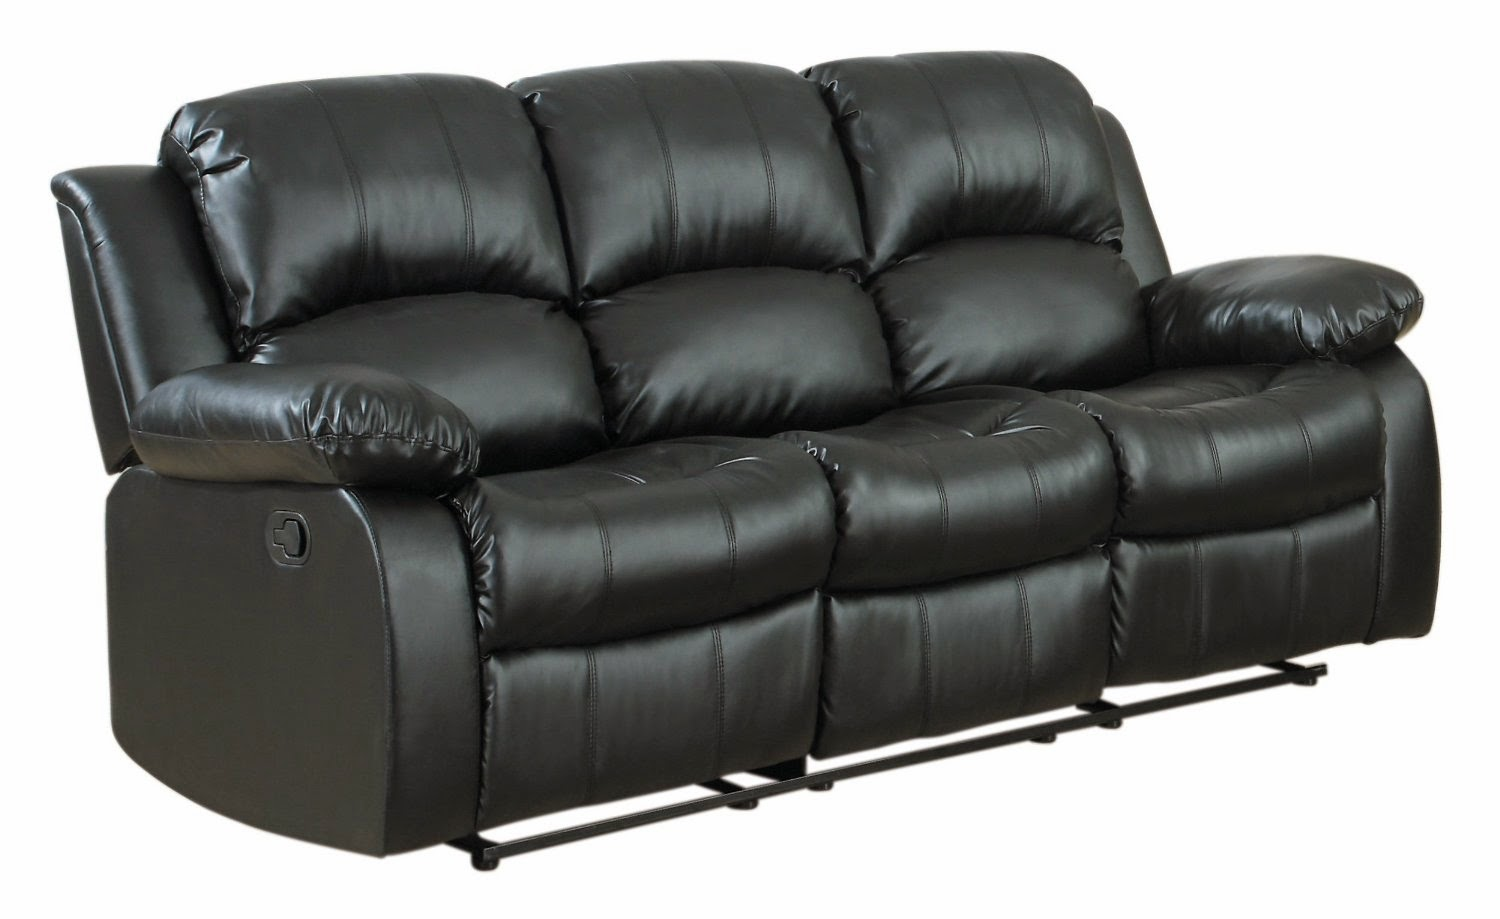 Top Seller Reclining And Recliner Sofa Loveseat: Power ...